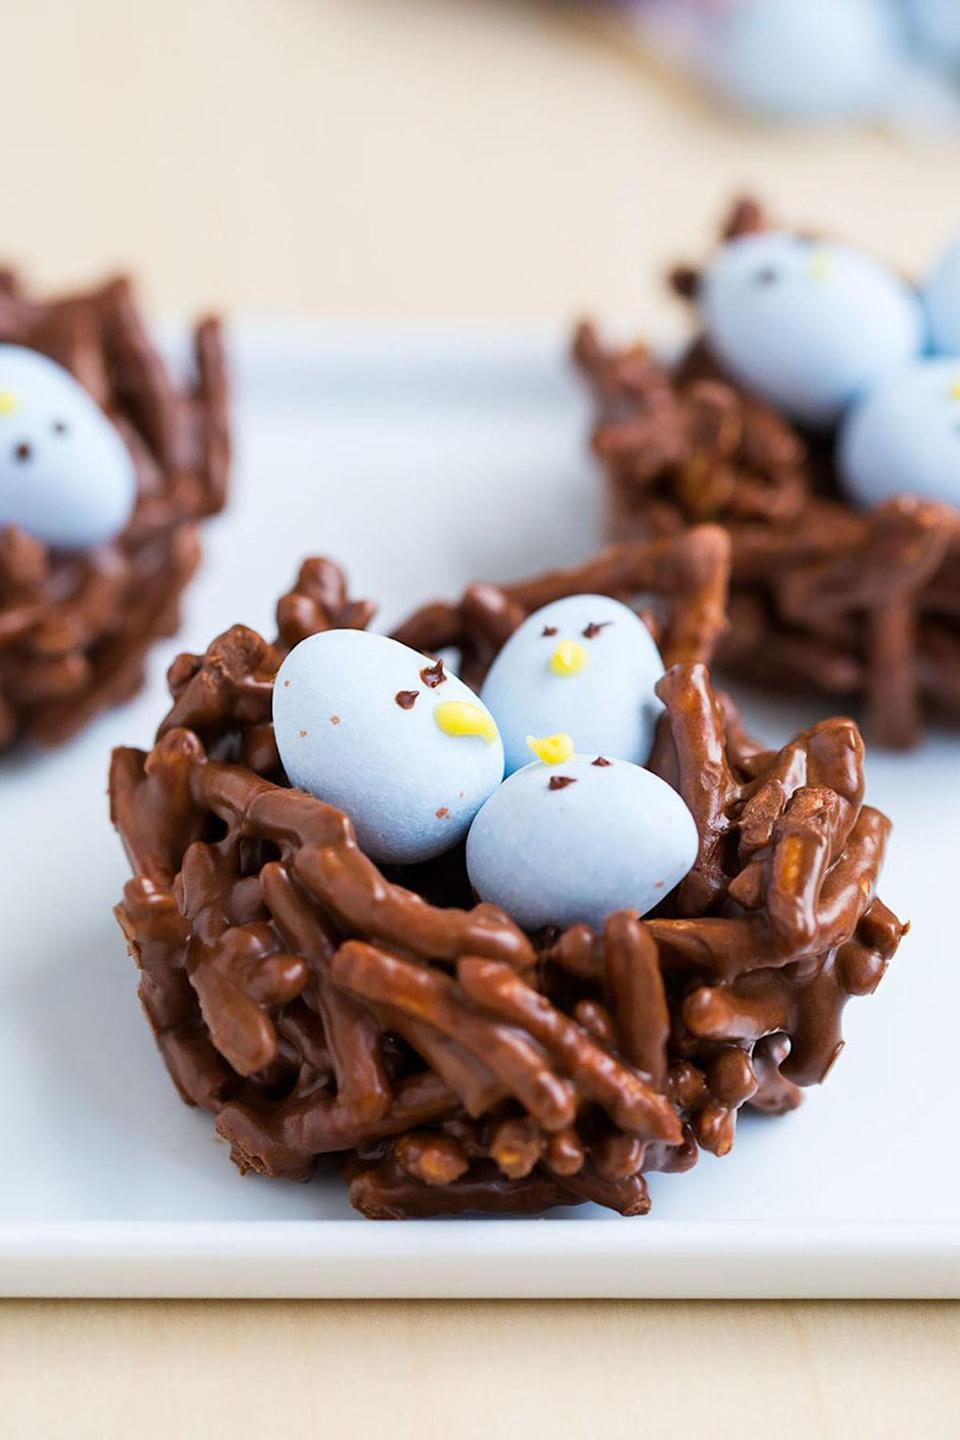 """<p><span>Chocolate-covered chow mein noodles form the base for these cozy-looking nests. Who knew putting little faces on Cadbury eggs would make them so adorable?</span></p><p><strong>Get the recipe at <a href=""""http://www.iheartnaptime.net/chocolate-egg-nest/"""" rel=""""nofollow noopener"""" target=""""_blank"""" data-ylk=""""slk:I Heart Naptime"""" class=""""link rapid-noclick-resp"""">I Heart Naptime</a>. </strong></p>"""